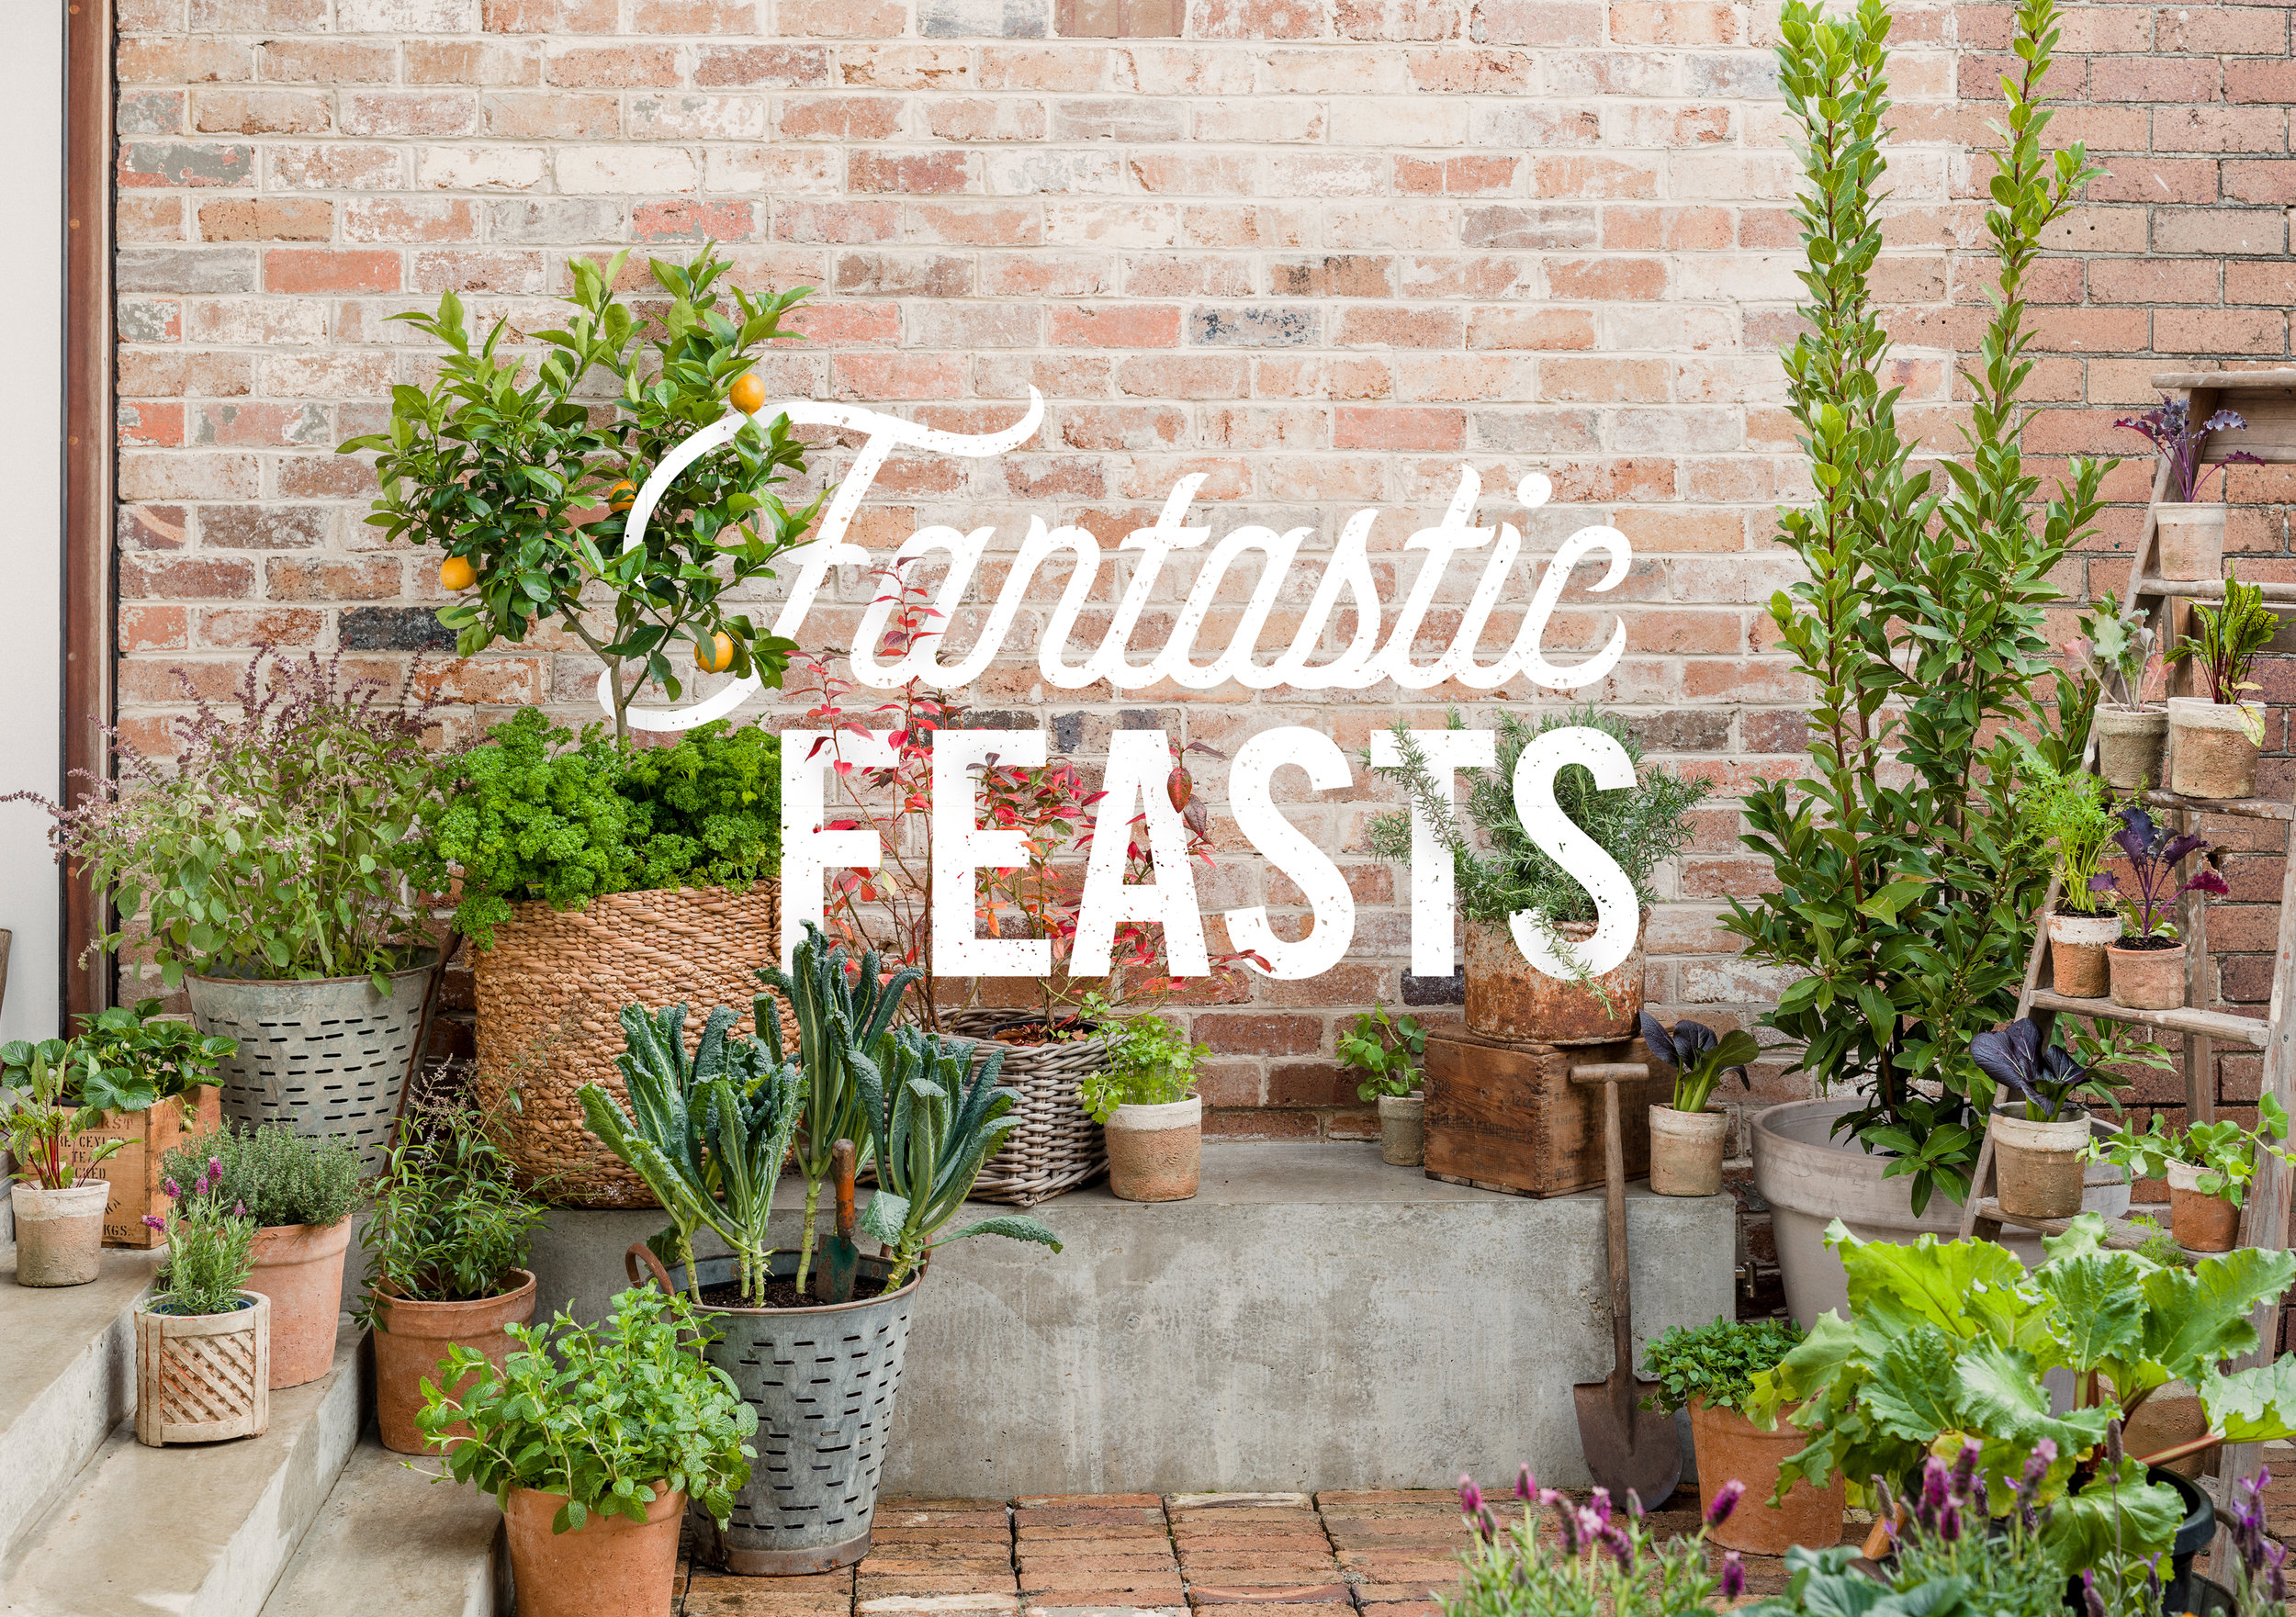 Fantastic Feasts - Created to look and taste great, this will get you growing your own in style. So pull on your designer wellies and prepare to enjoy the fruits (and veggies) of your labours.